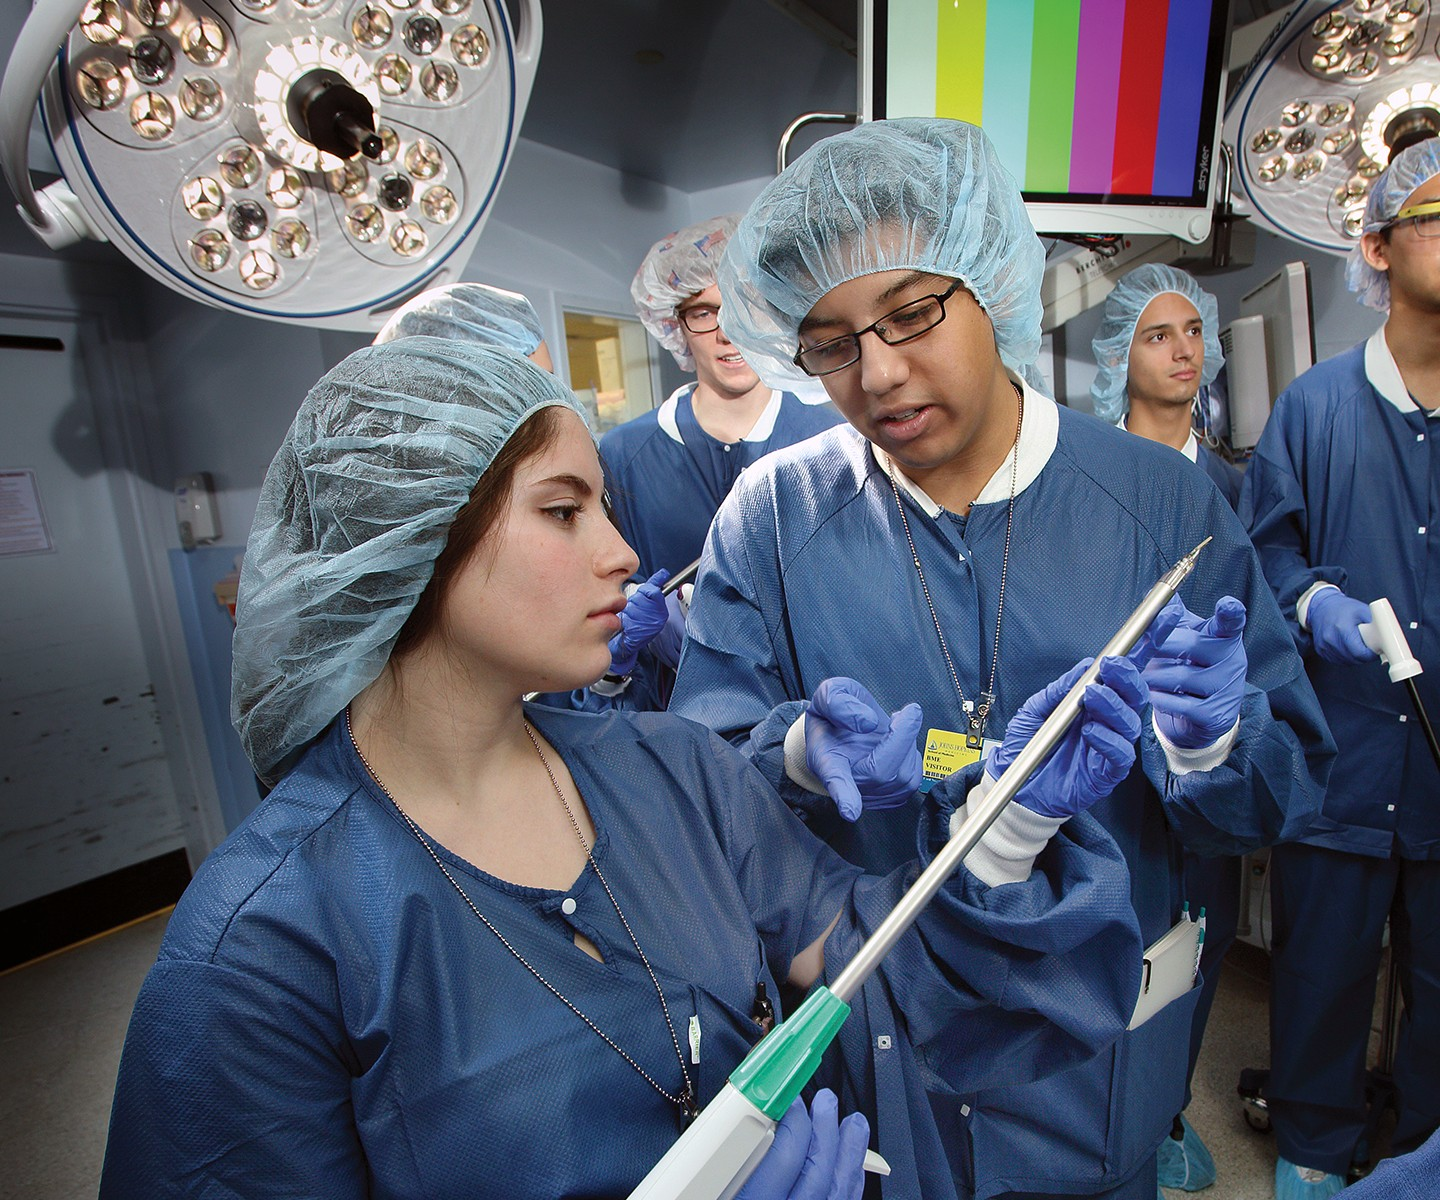 Two students in scrubs examine a medical device